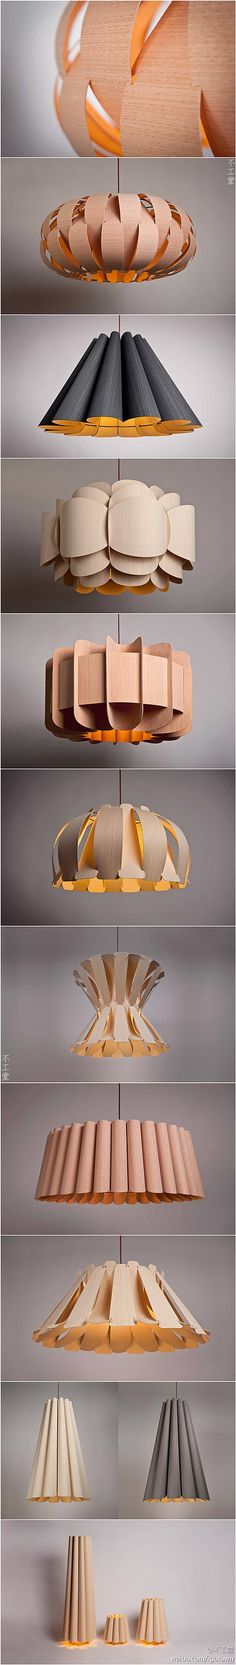 Beautiful cut and folded paper pendant lamps.